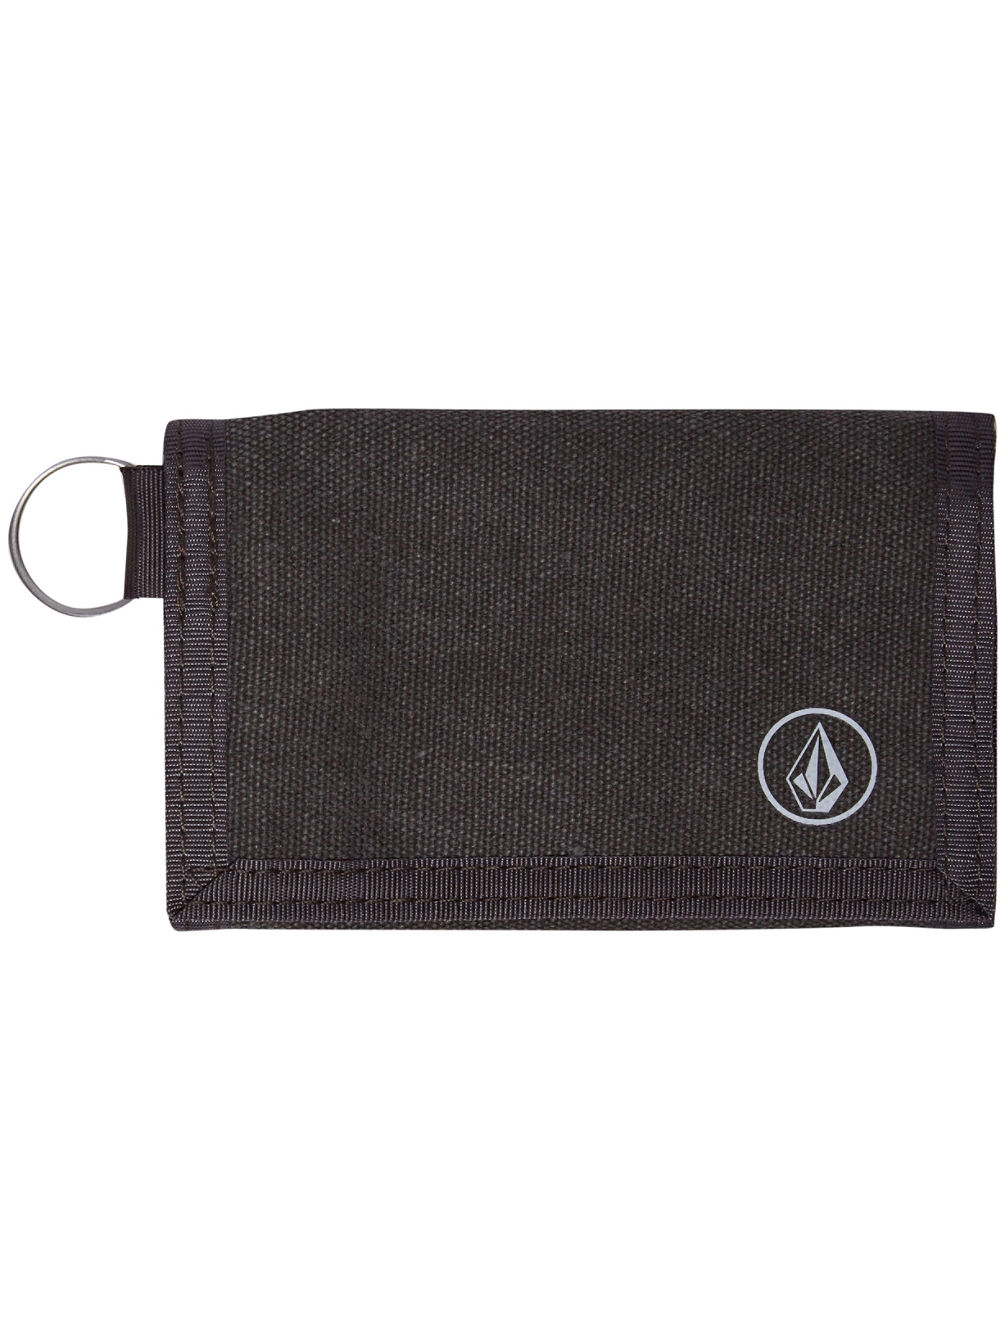 Full Stone Cloth Wallet